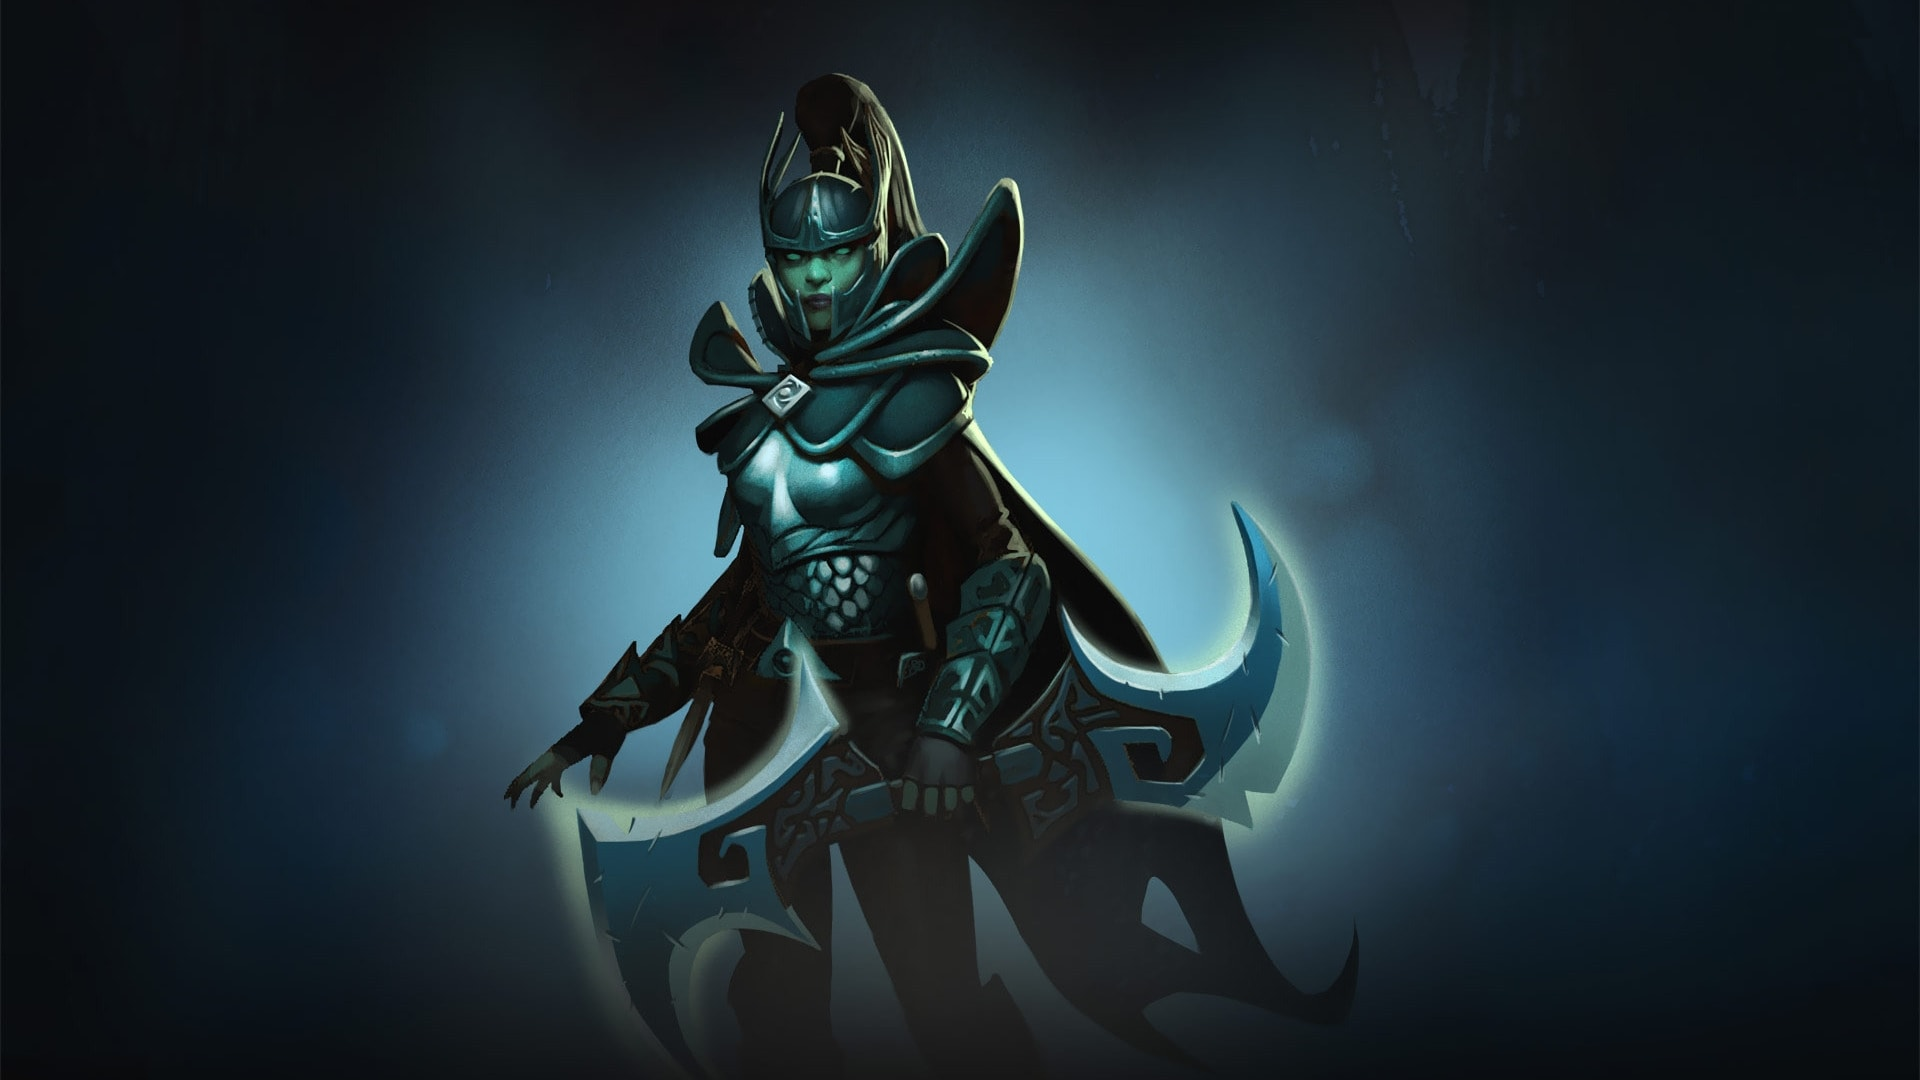 Dota2 : Phantom Assassin widescreen wallpapers